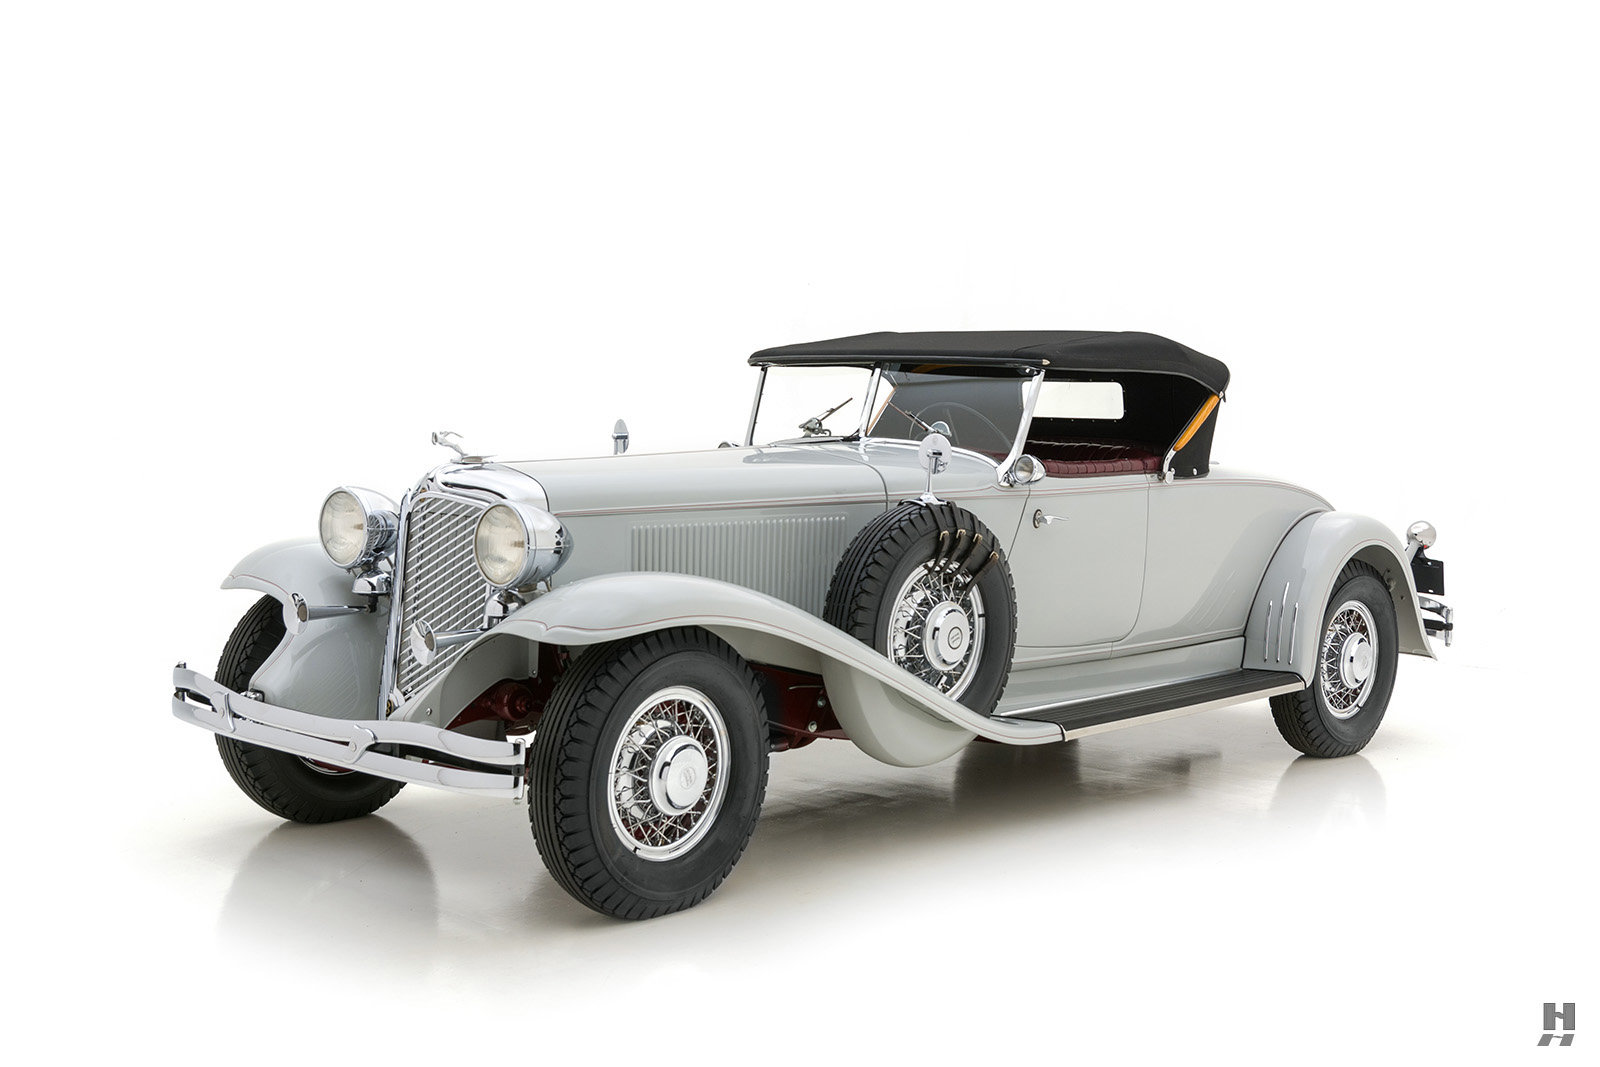 1931 Chrysler CG Imperial Roadster For Sale (picture 1 of 6)